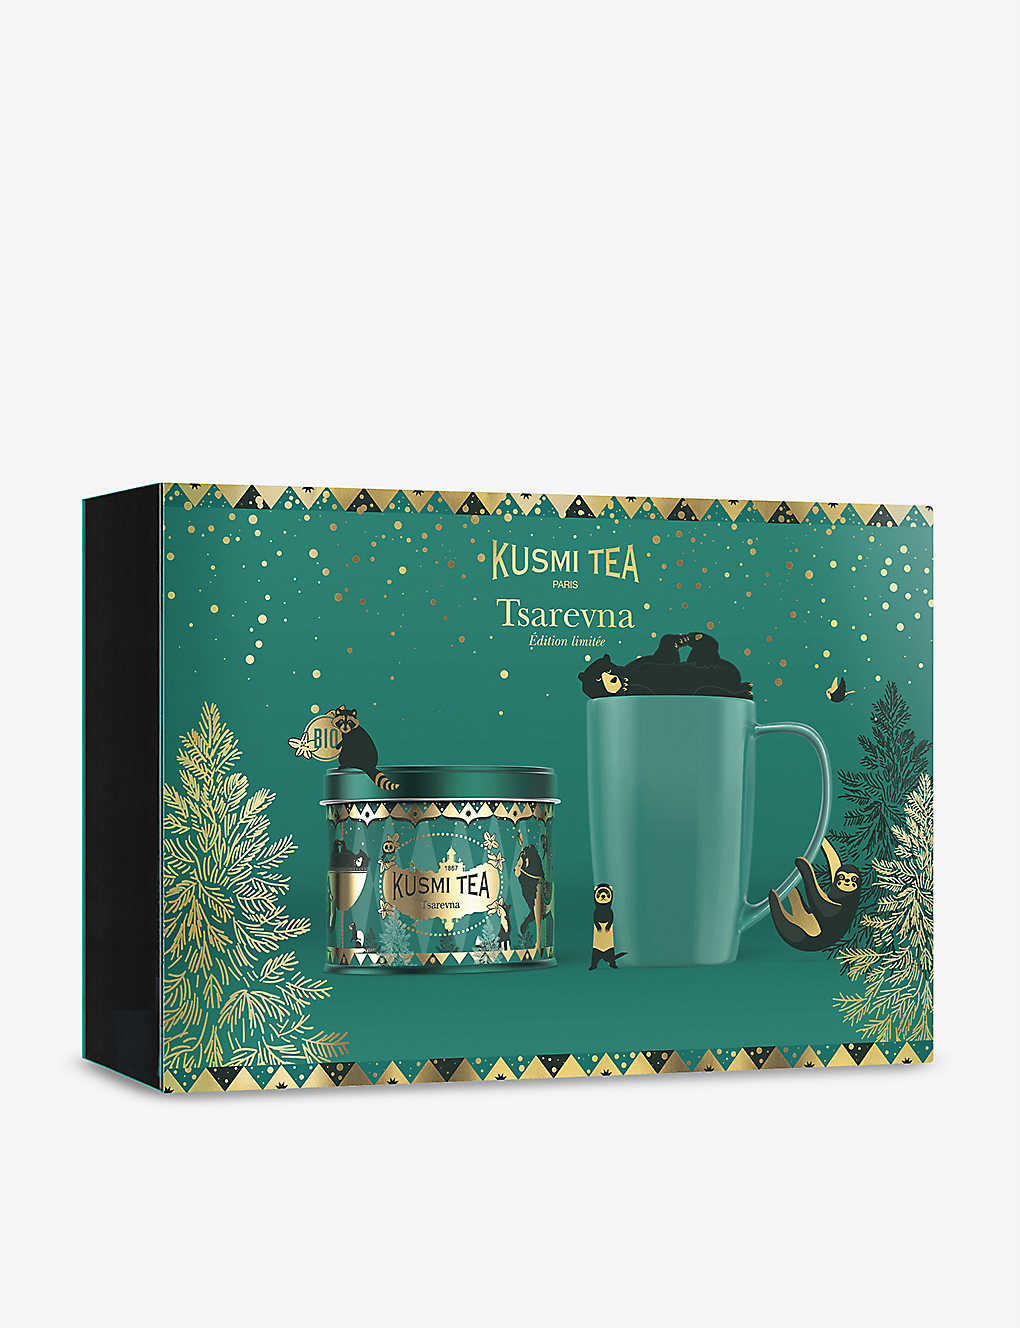 KUSMI TEA: Tsarevna tea and mug gift set 450g